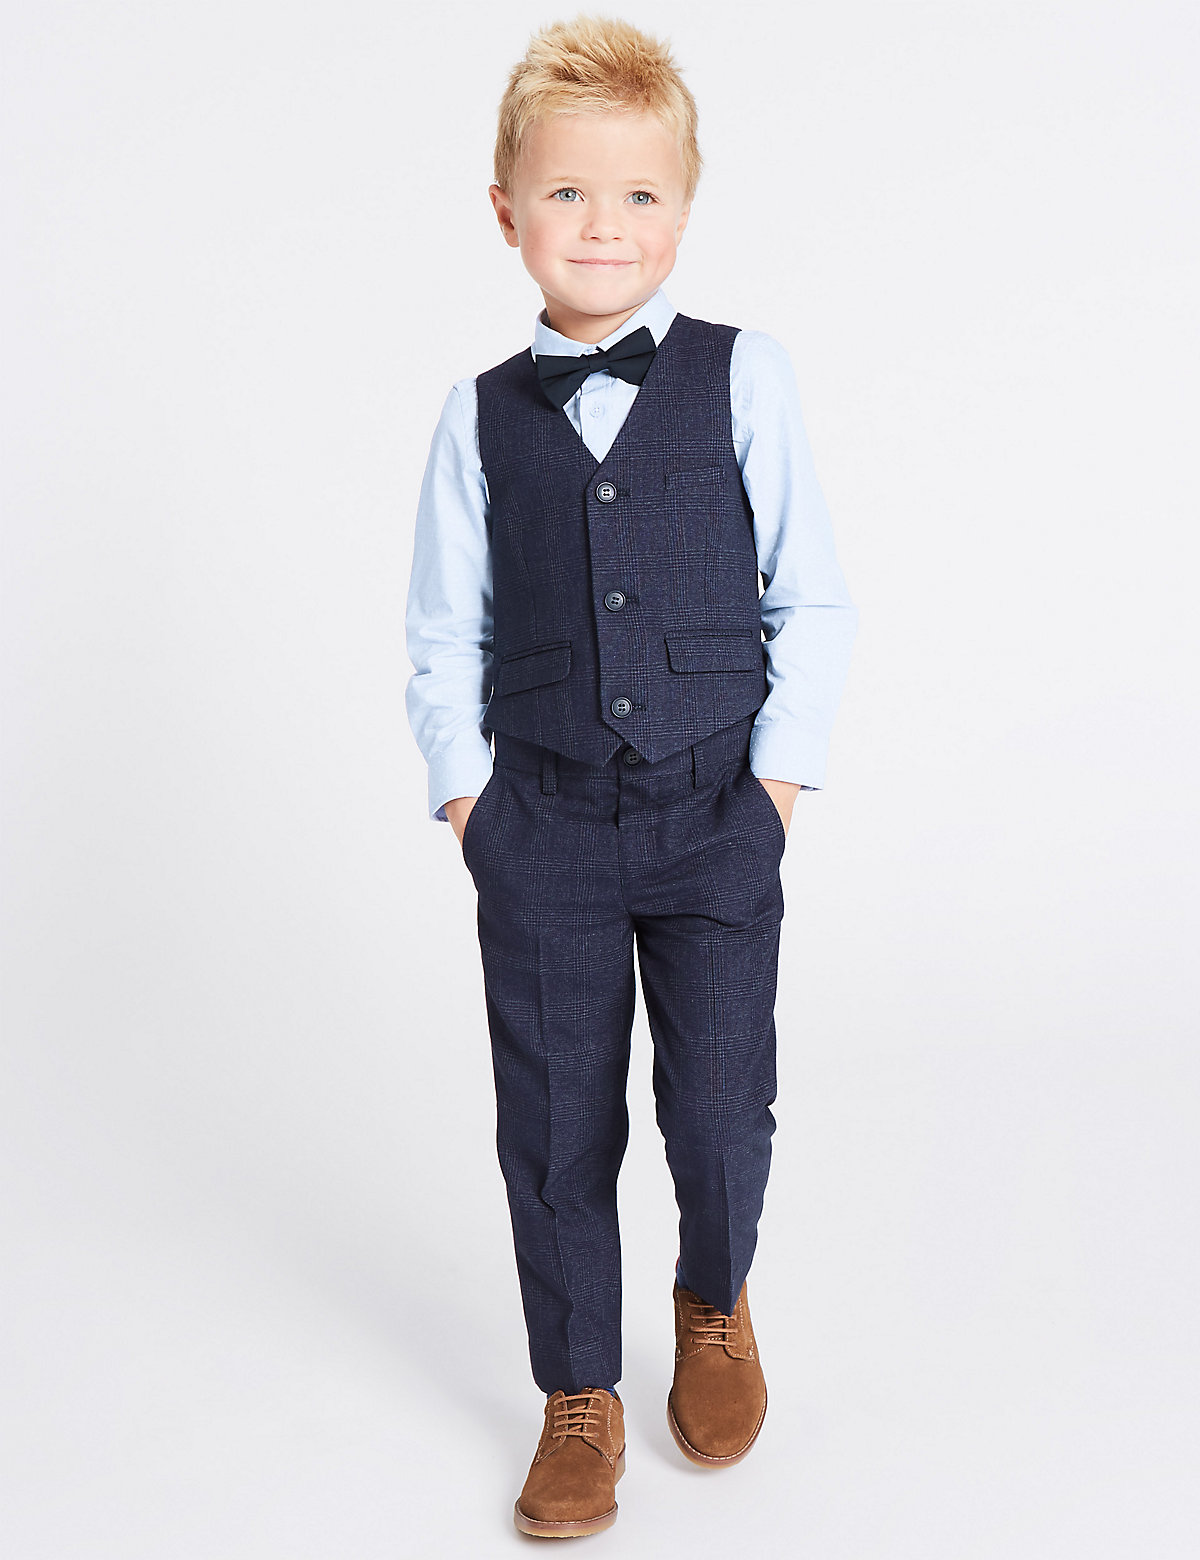 4 Piece Waistcoat Trousers & Shirt with Bow Tie Outfit (1-5 Years)